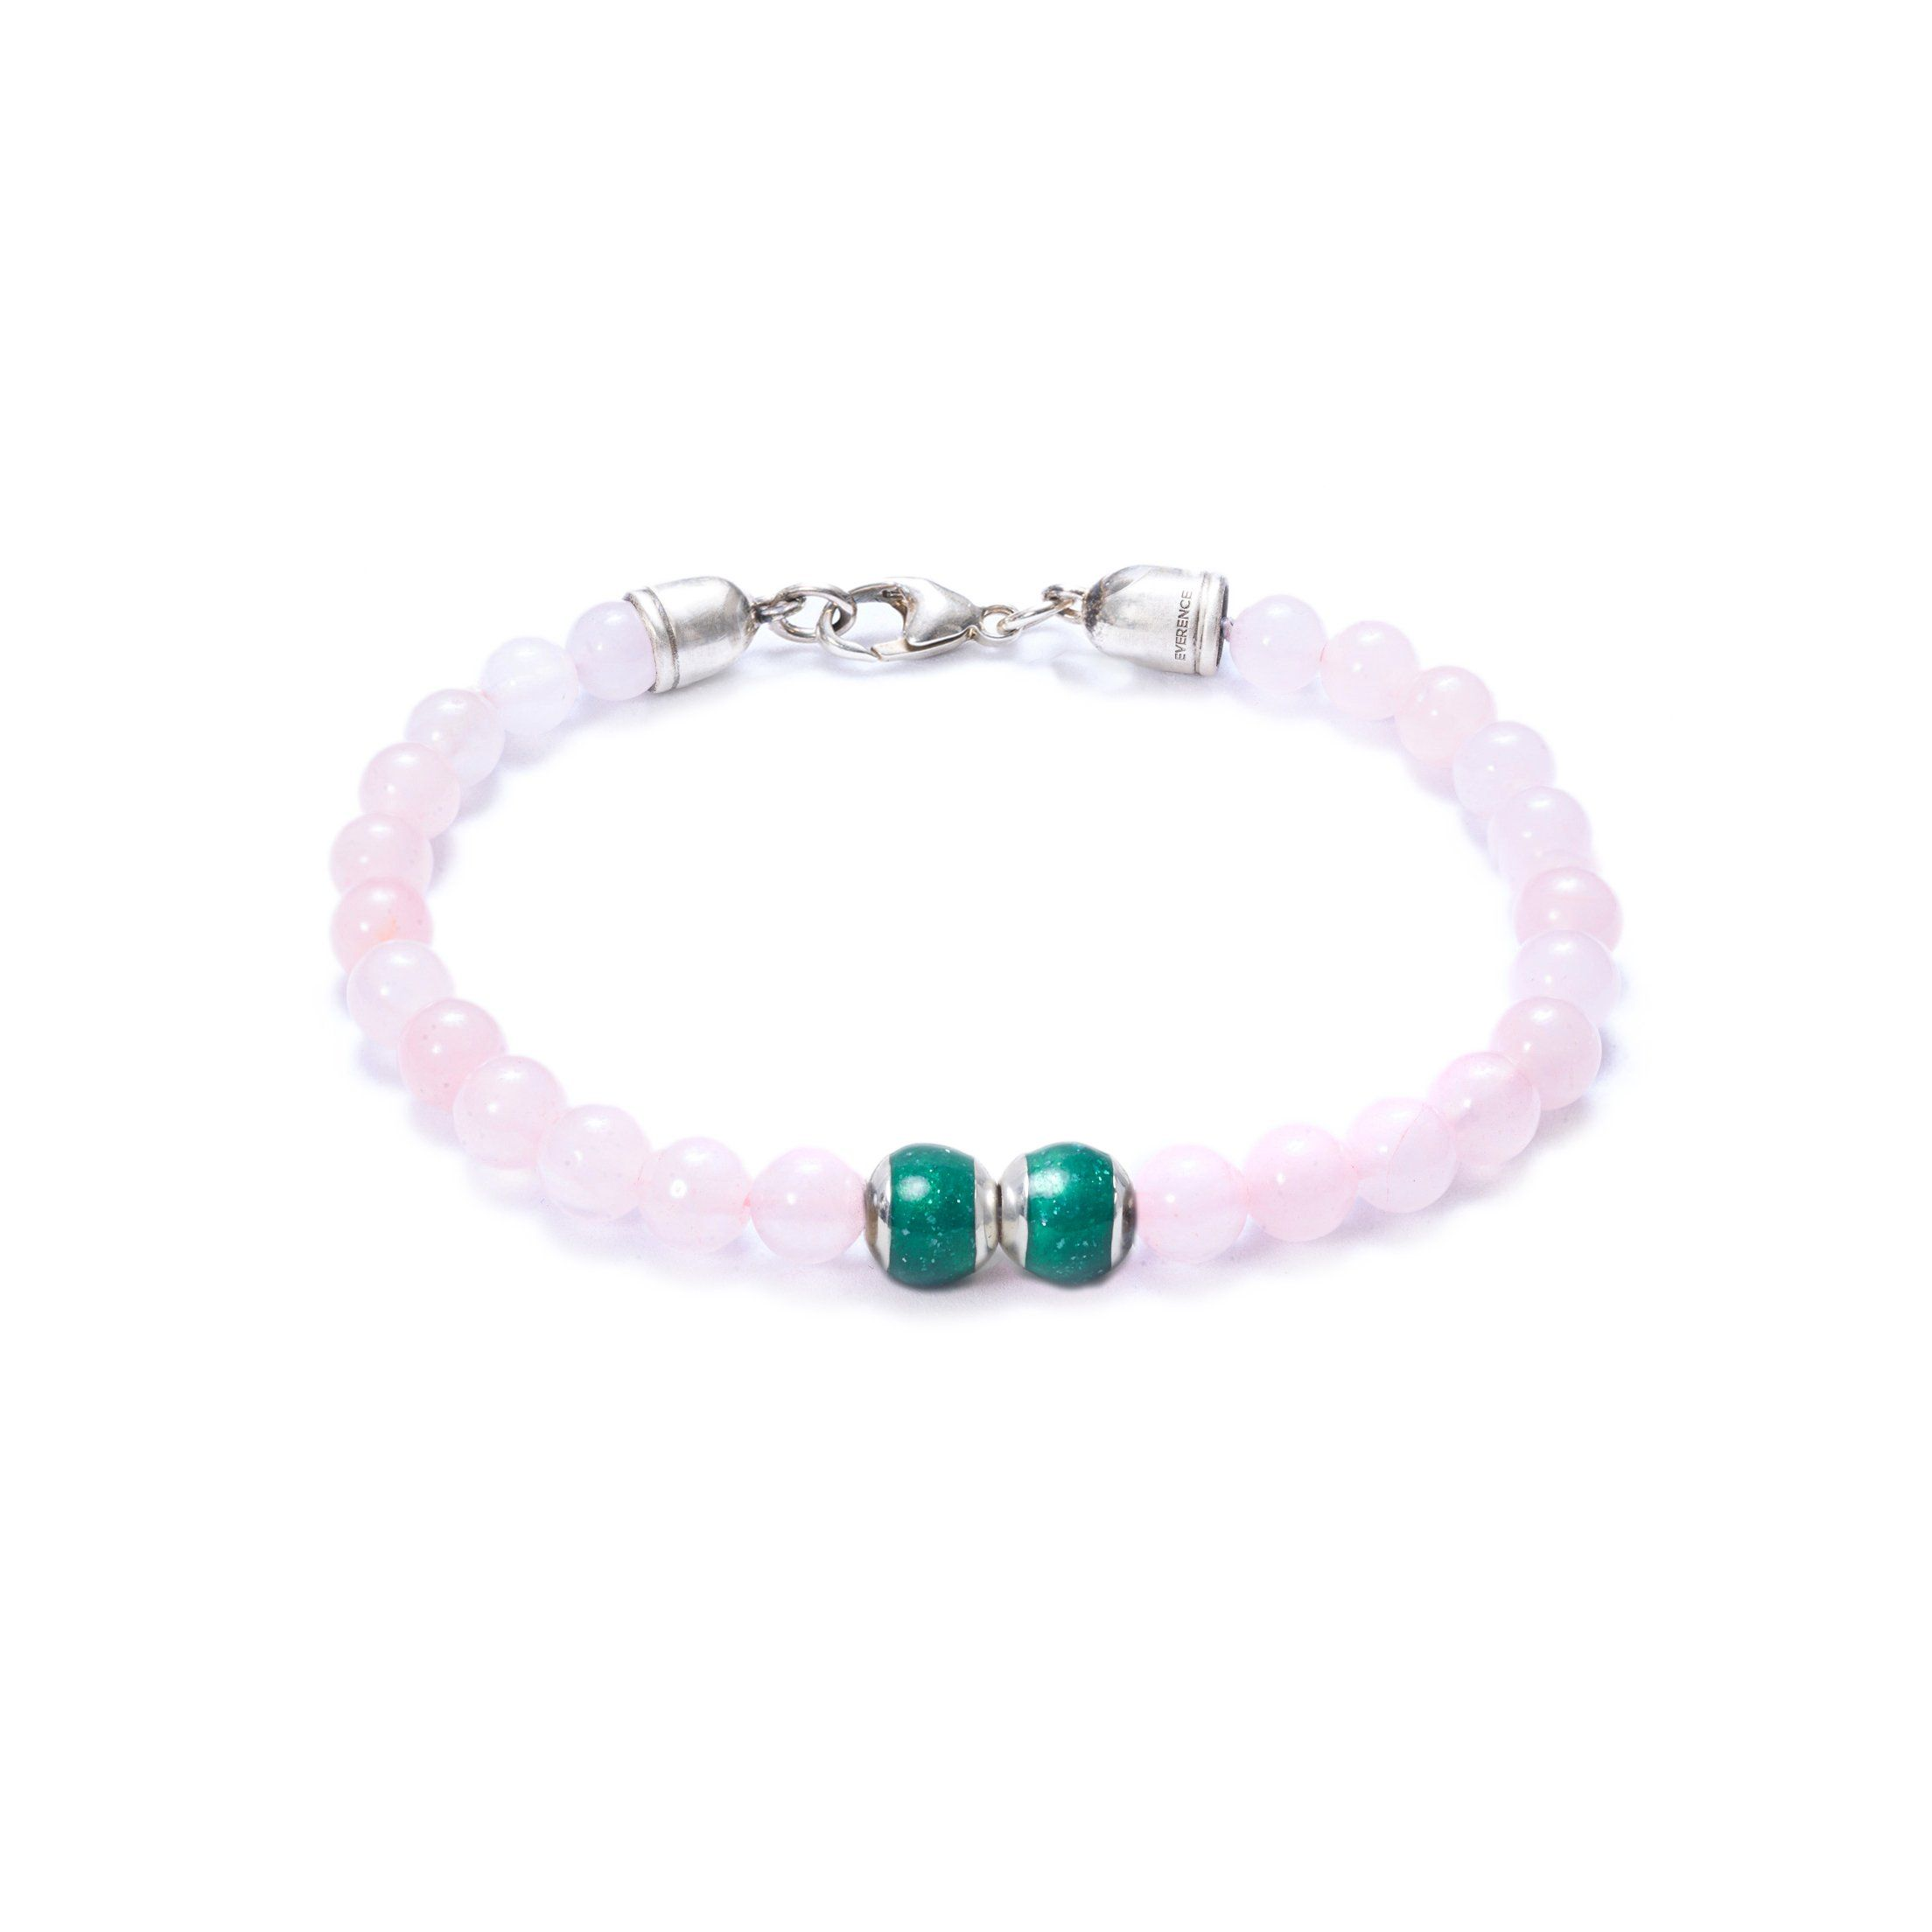 Rose Quartz, Two Everence Beads Everence Green Lobster Claw 7